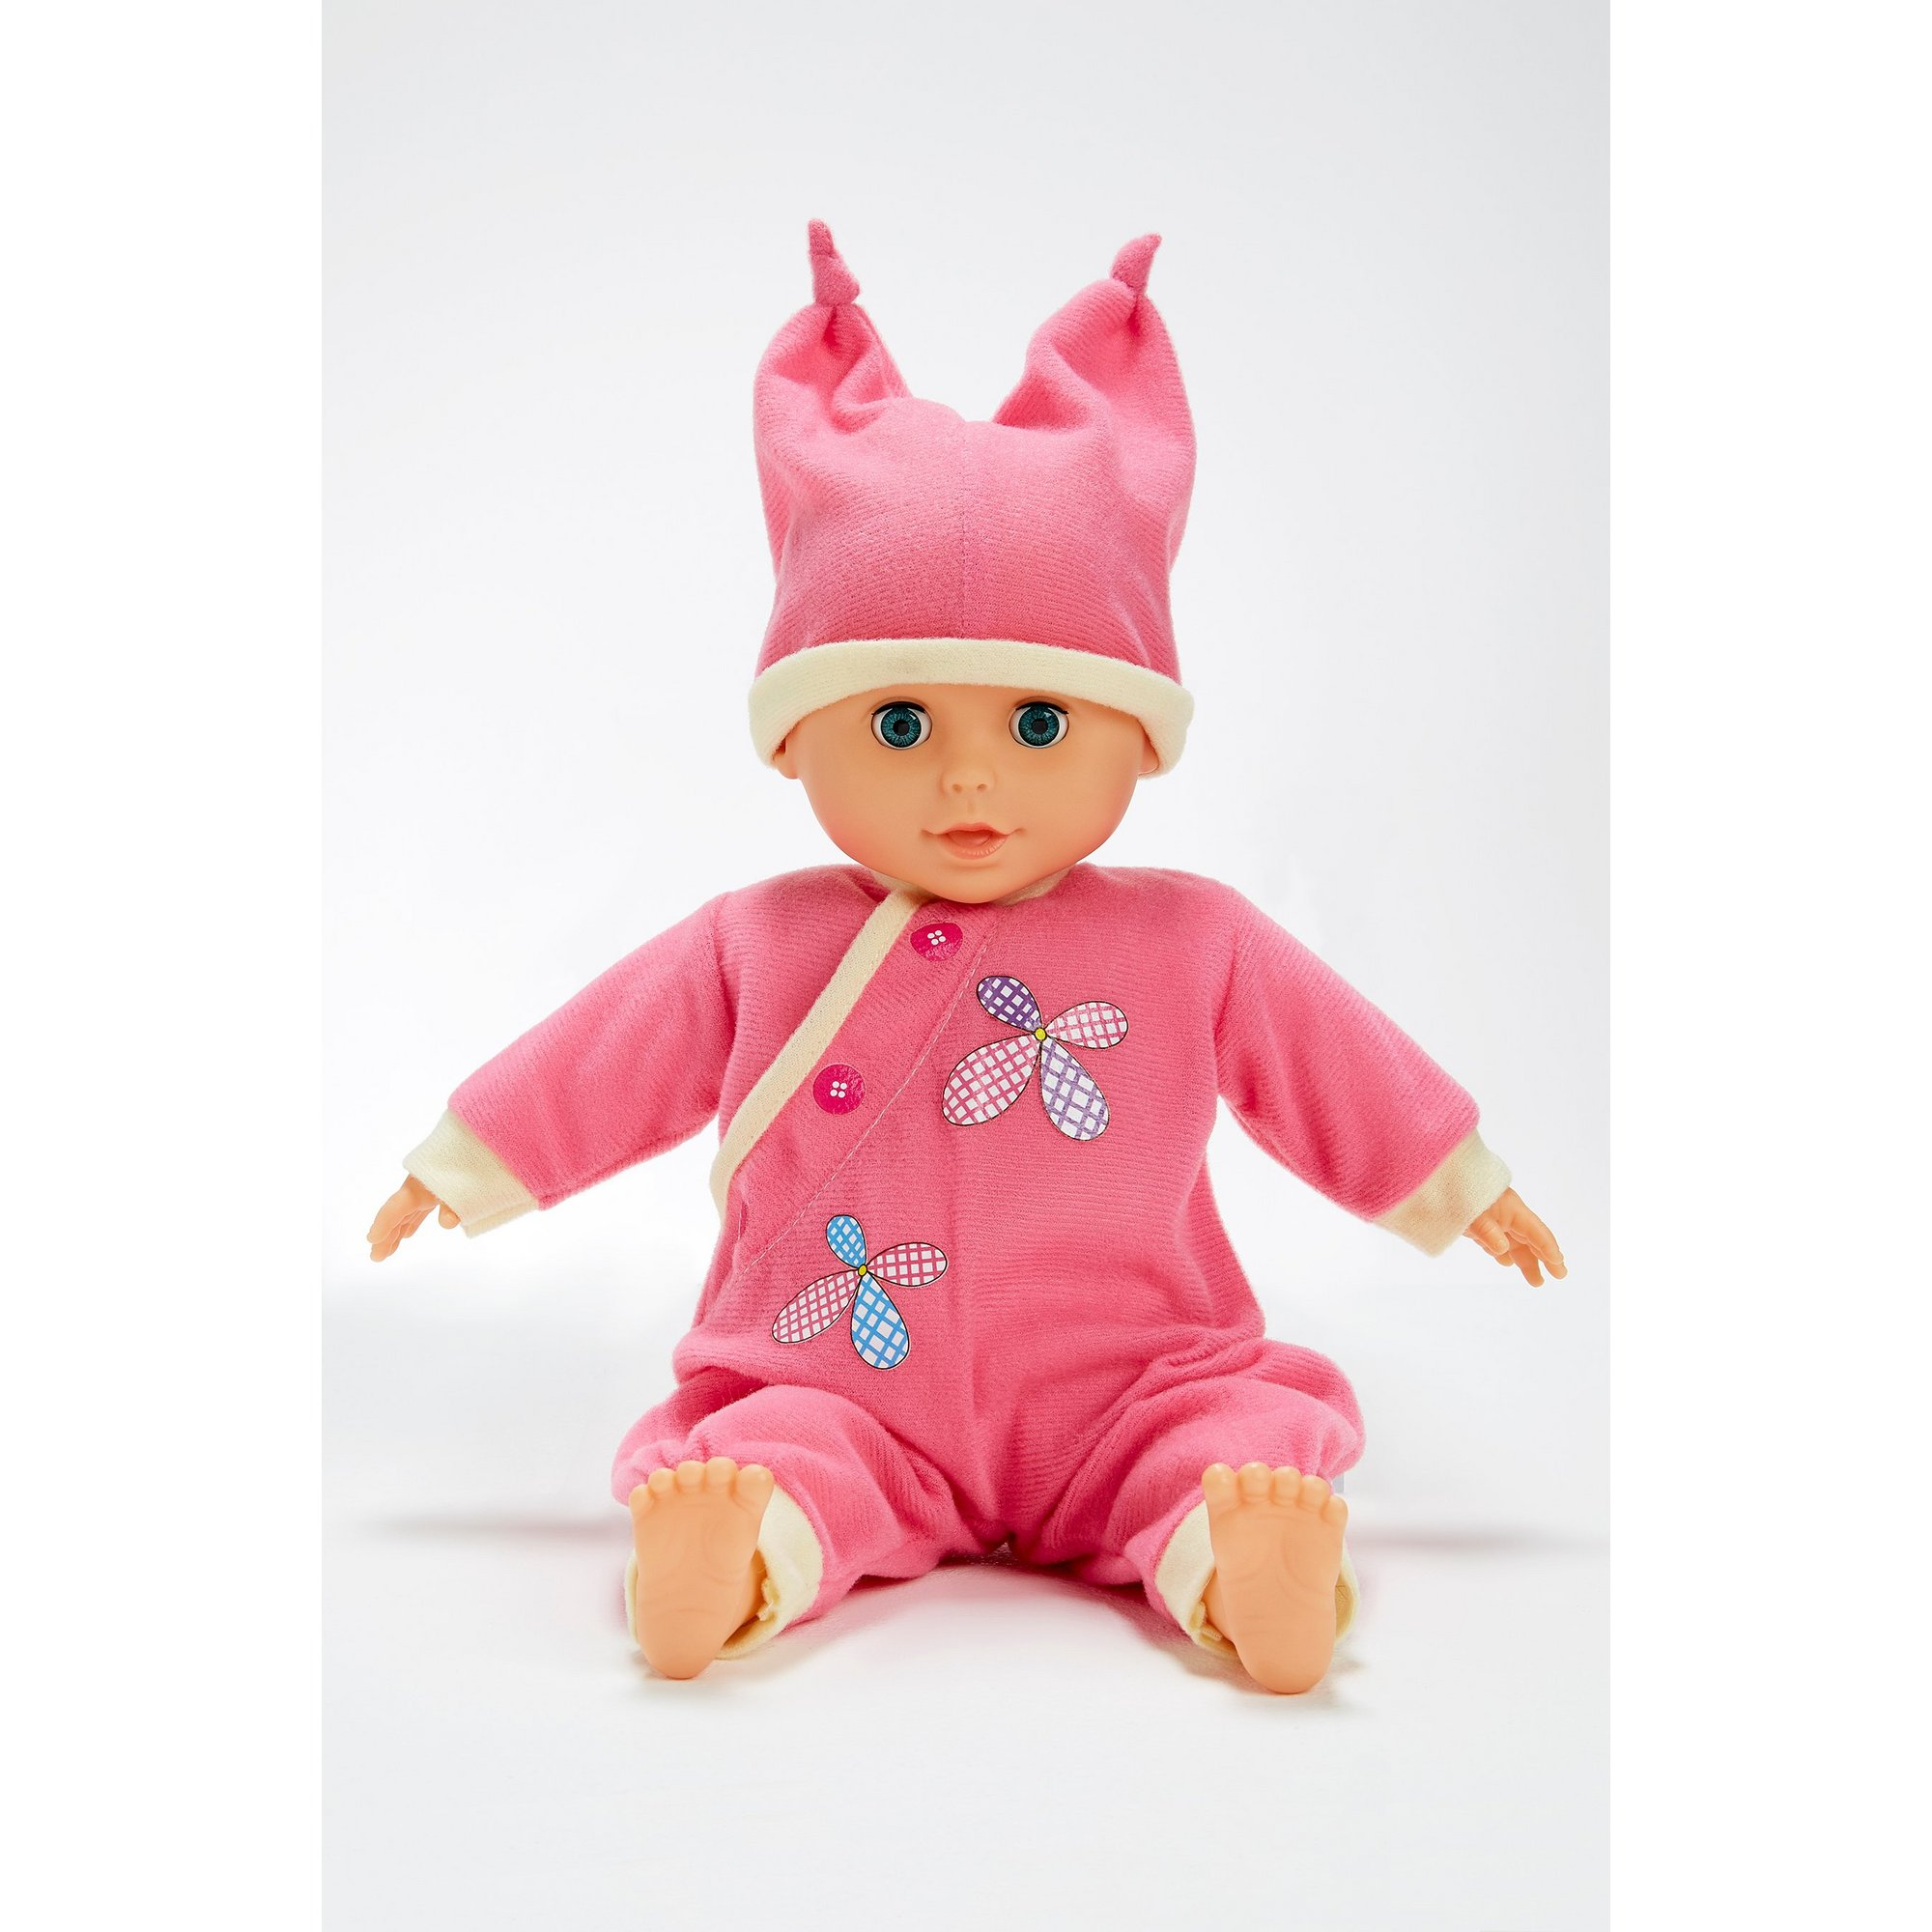 Image of Bambolina 40cm Doll with 5 Outfits and 24 Sounds